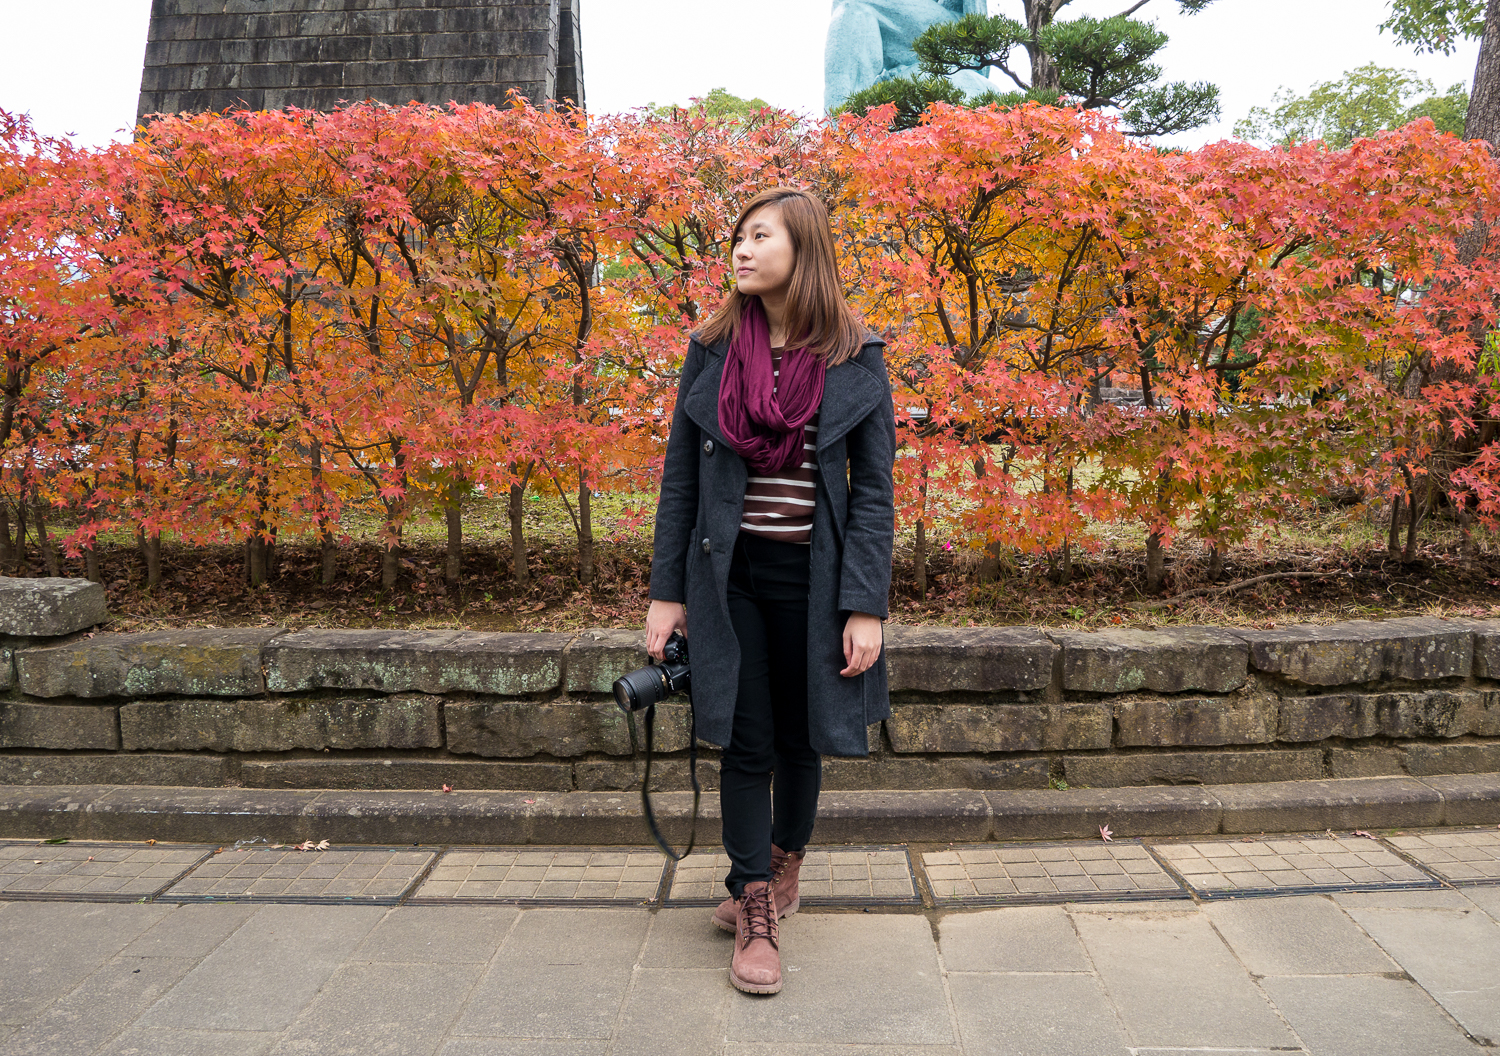 ootd autumn leaves in nagasaki peace park